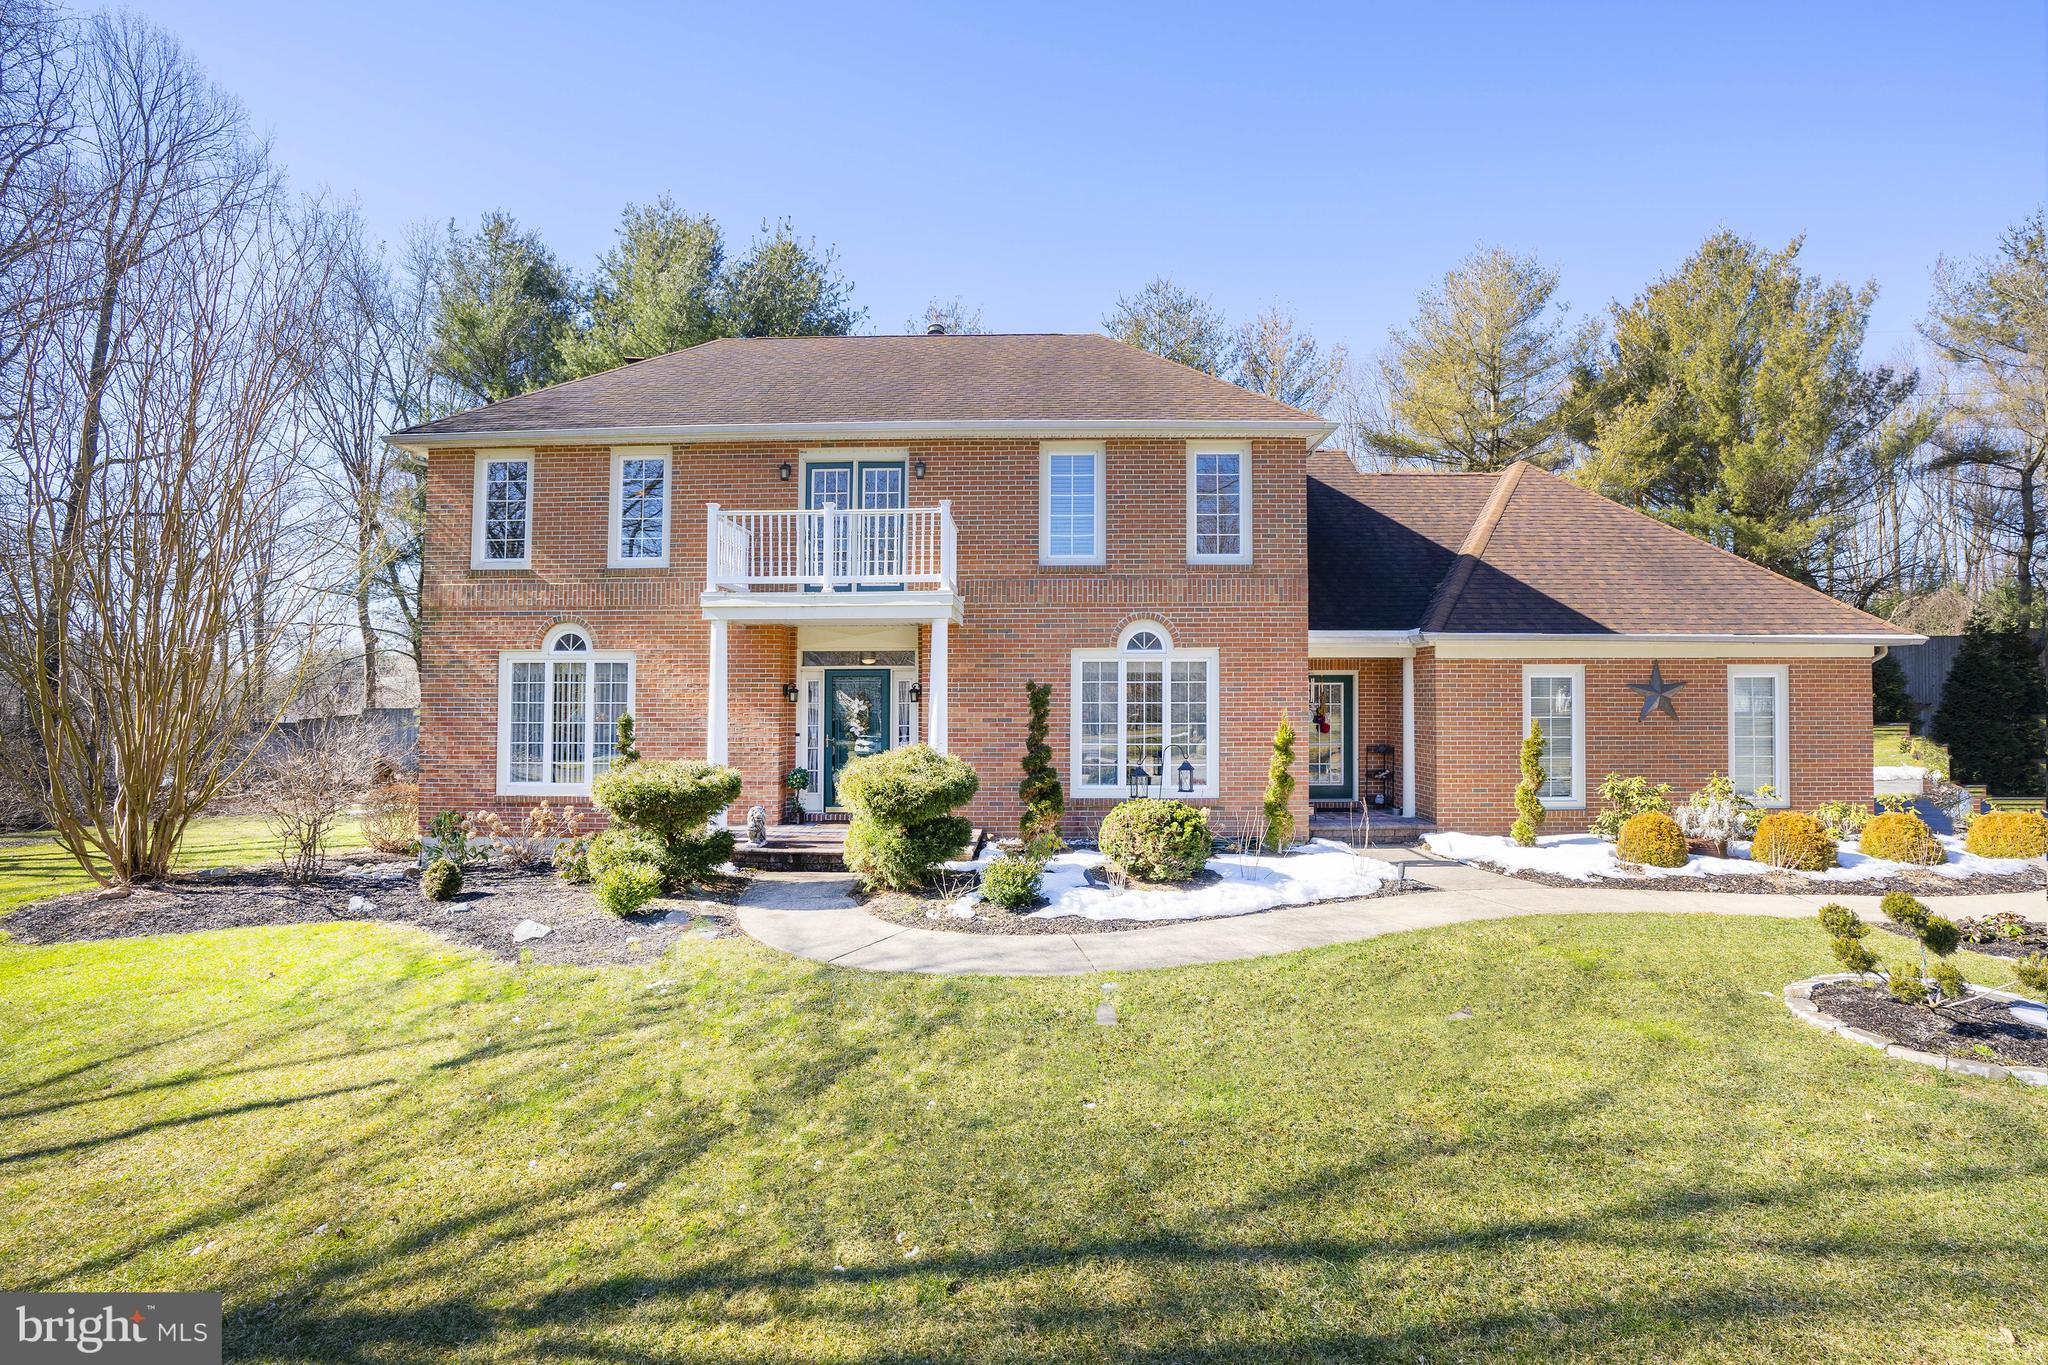 Welcome to this fabulous Hockessin colonial in desirable Westover Chase. This stylish and well-maintained home is nestled on private cul-de-sac and offers a flowing open floor plan. A winding walkway welcomes you to the grand entrance foyer with a stunning oak staircase flanked by a sophisticated formal living & dining rooms that are accented by triple circle top windows providing an abundance of natural light to the space. The elegant living room features French doors that transition to a casual vaulted family room with a stone fireplace & skylights. Enjoy family meals in the adjacent gourmet kitchen complemented by newer stainless steel appliances, granite counter tops, mosaic back splash and large center island. The breakfast room with sliding doors provides access to an impressive sunny 3-season room with luxury laminate flooring, new windows and wet bar. Sliding doors usher you to a custom paver patio with fireplace that is perfect for outdoor gatherings while enjoying the level yard. A functional laundry/mud room with entrances to the front & back exterior, updated powder room and 3-car garage completes this floor. The second level features a hall bath with tile surround and new vanity. The additional bedrooms are generous in size offering ceiling fans with an abundance of closet space. Retreat to the Master bedroom & enjoy two walk in closets with double door access to the sitting room featuring an exterior balcony.  Relax in this breathtaking brand new primary bath with neutral custom tile work, new granite topped vanities and spa shower with upgraded 8 zone shower head. Completing this package is a fantastic finished lower level with new full bath. This space is perfect for an exercise, theater room and also offers a large storage area. A maintenance free vinyl exterior and loads of curb appeal completes this package. All of this, plus located close to schools, shopping, county parks, Hockessin Athletic Club and major roads. Don't miss this opportunity to m